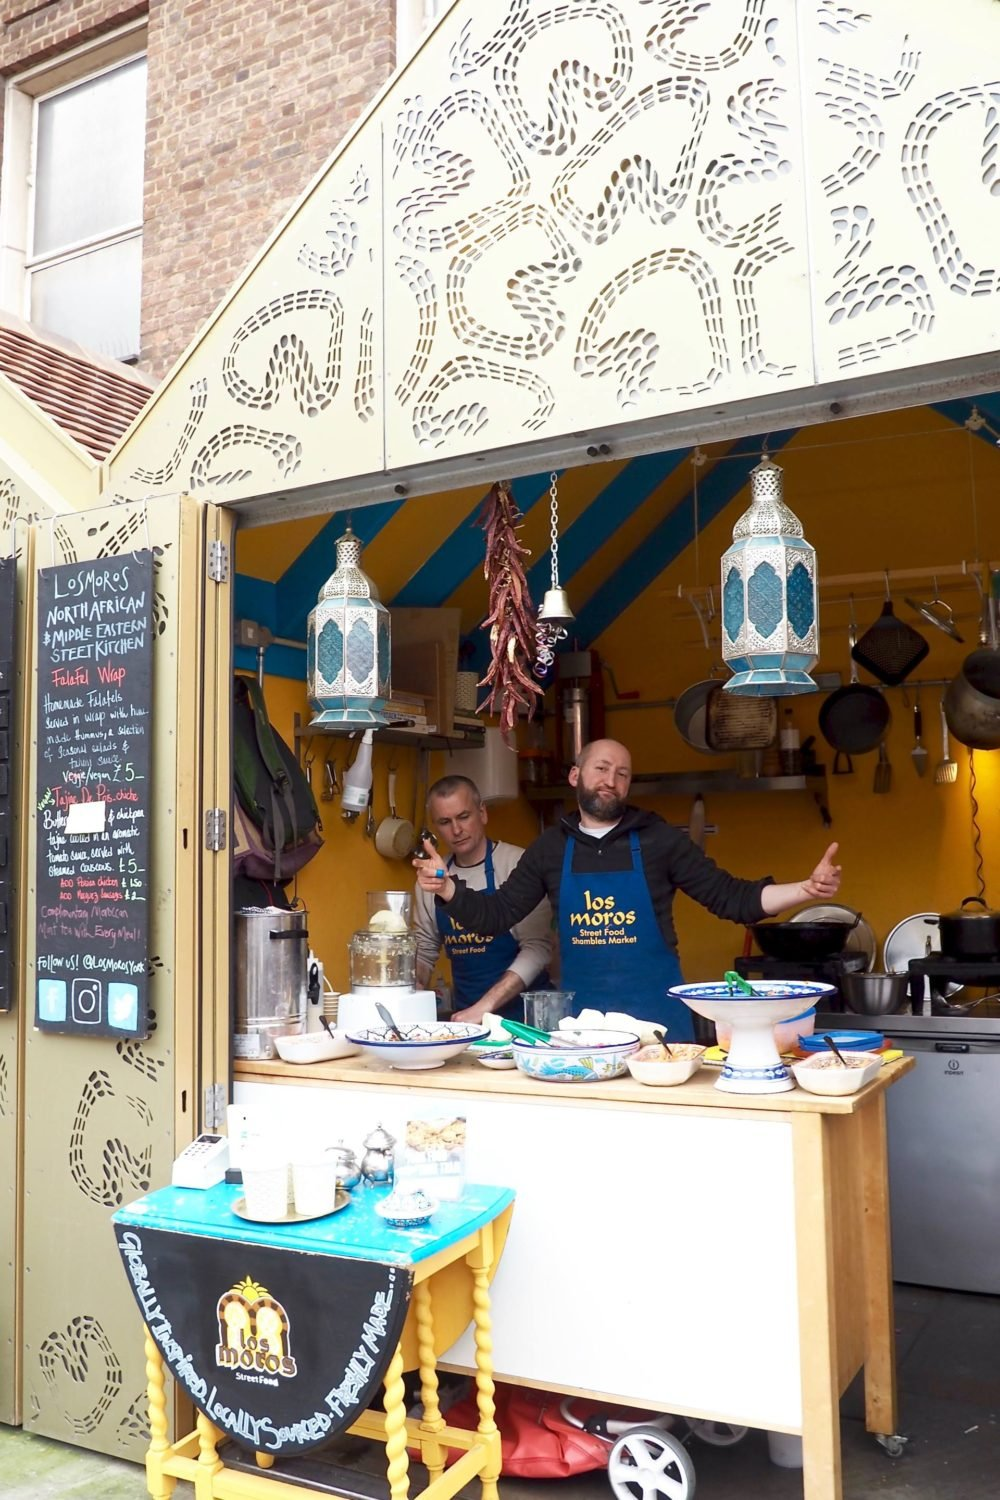 York food tour: food market